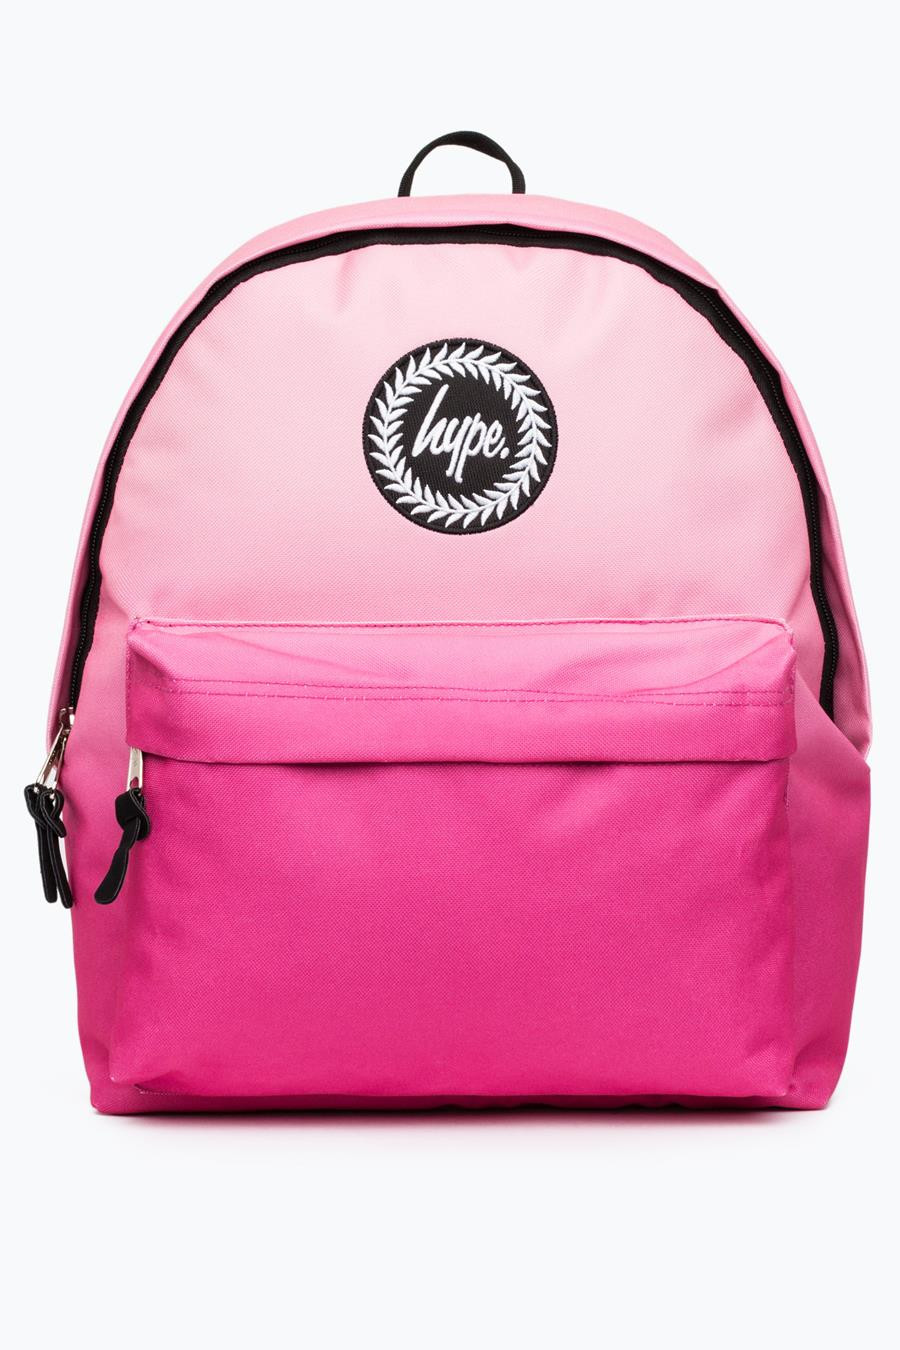 HYPE PINK FADE BACKPACK